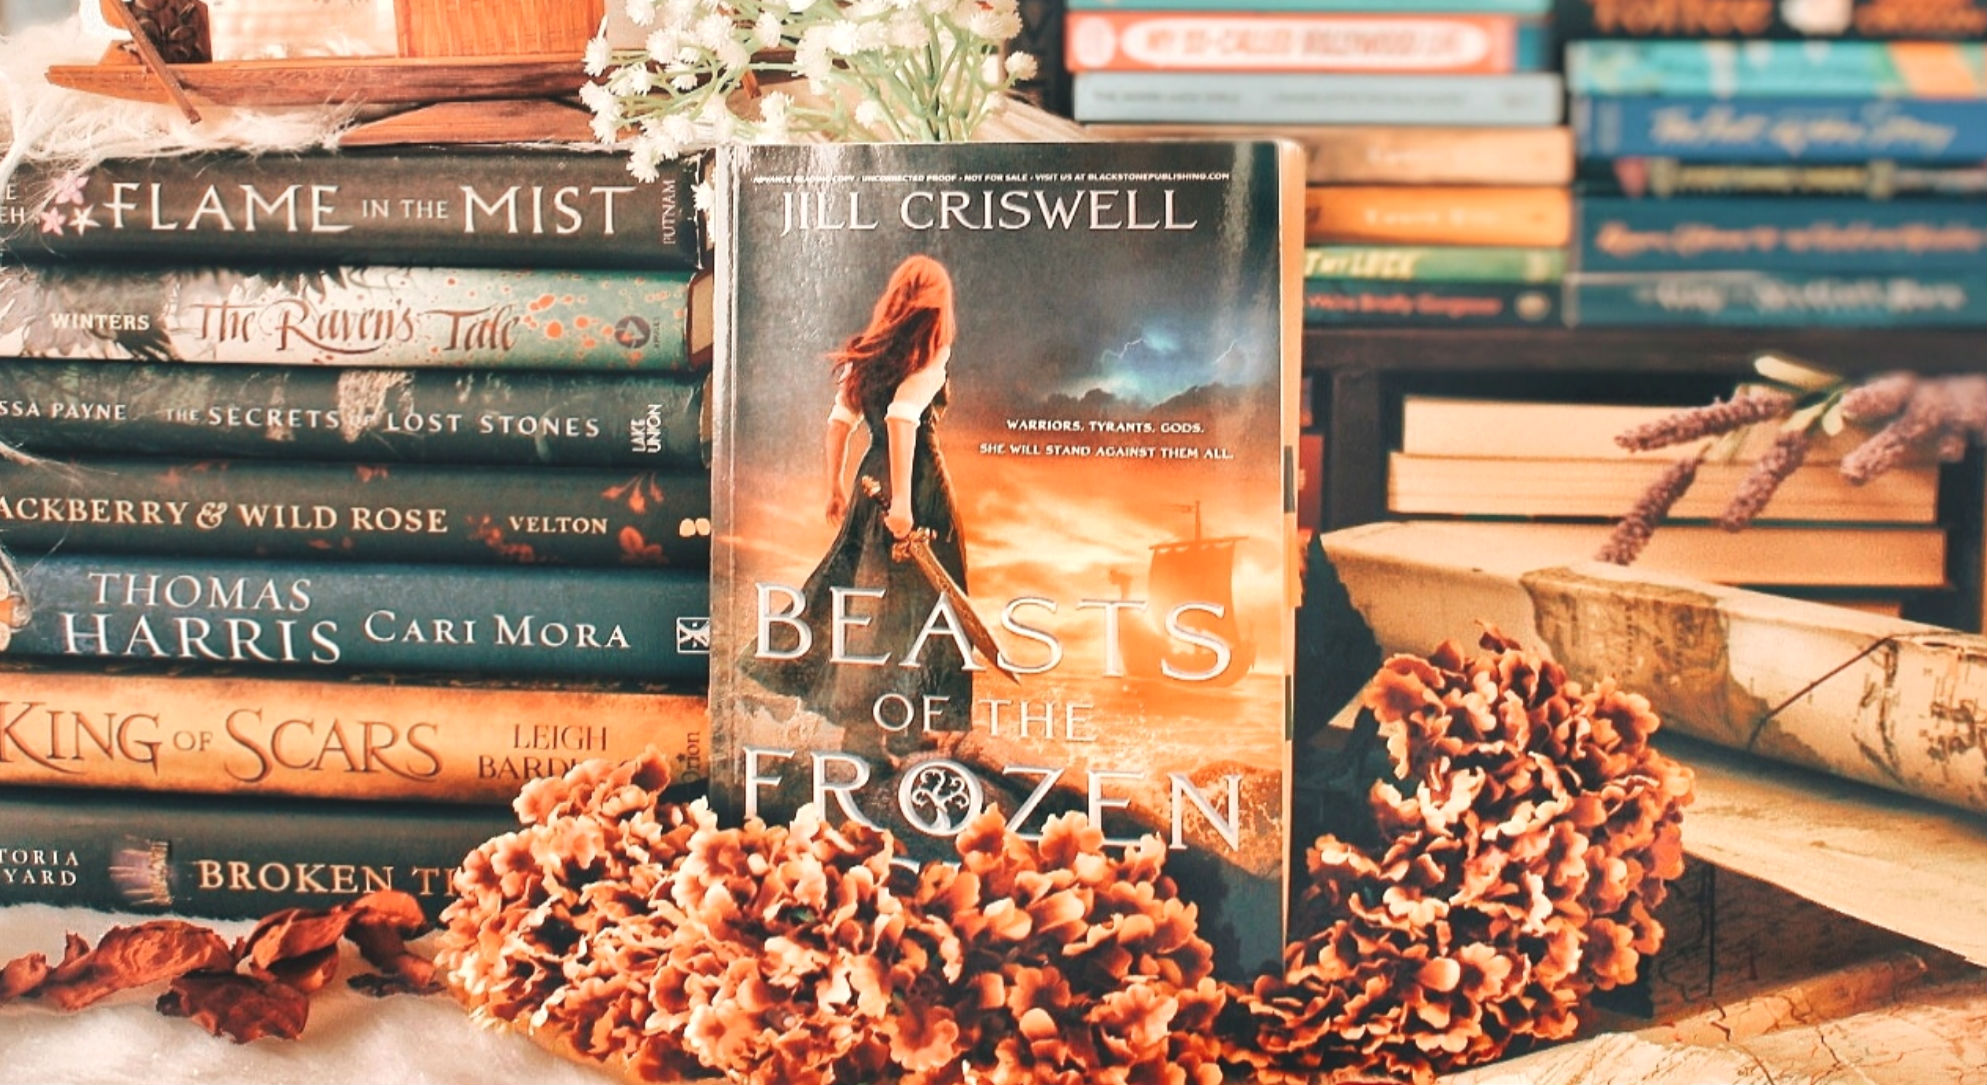 Review & Intl Giveaway: Beasts of the Frozen Sun, written by Jill Criswell